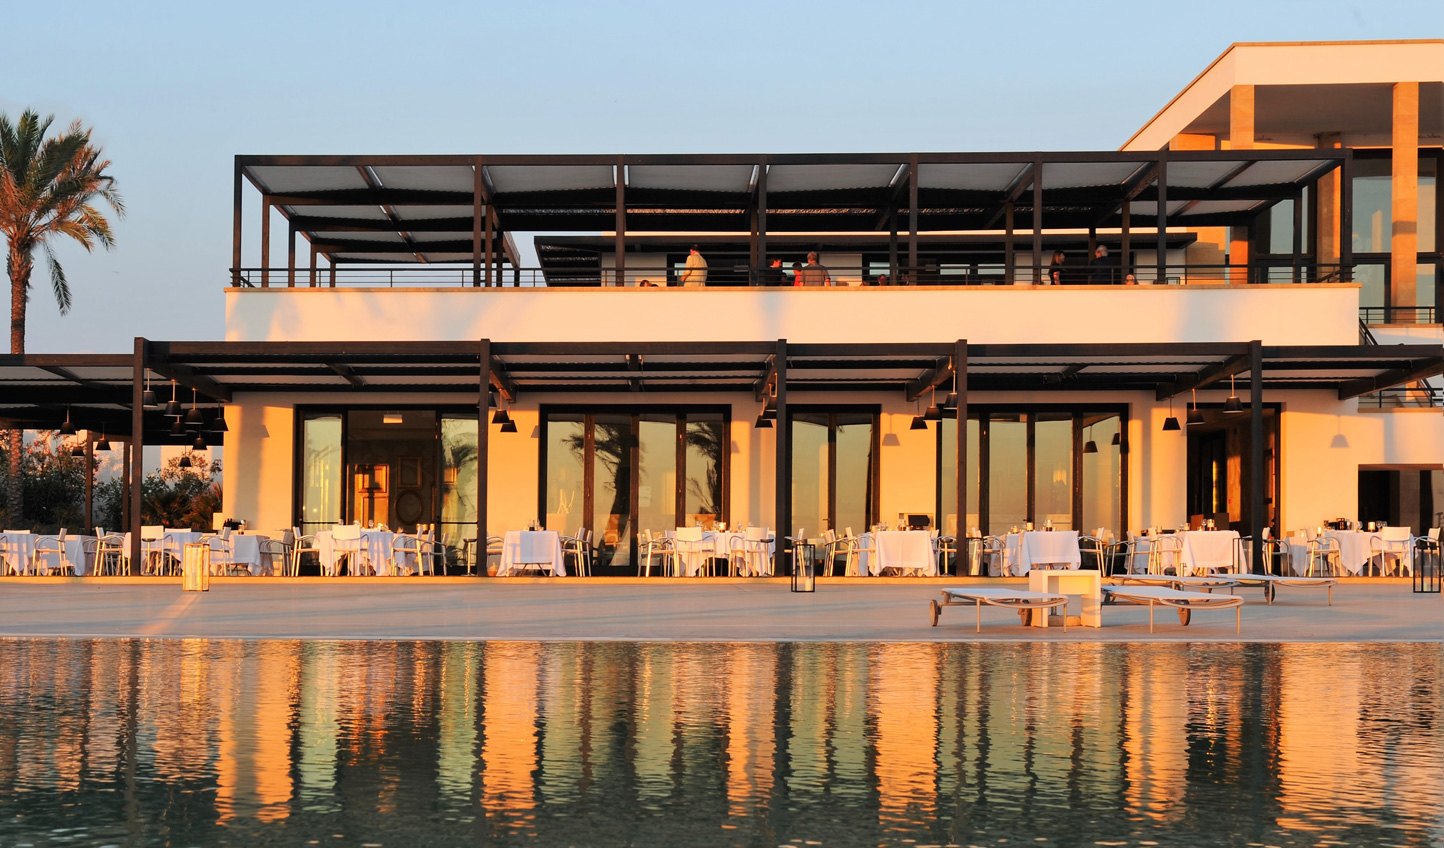 Dine poolside as dusk rolls in and bathes the land in a golden light